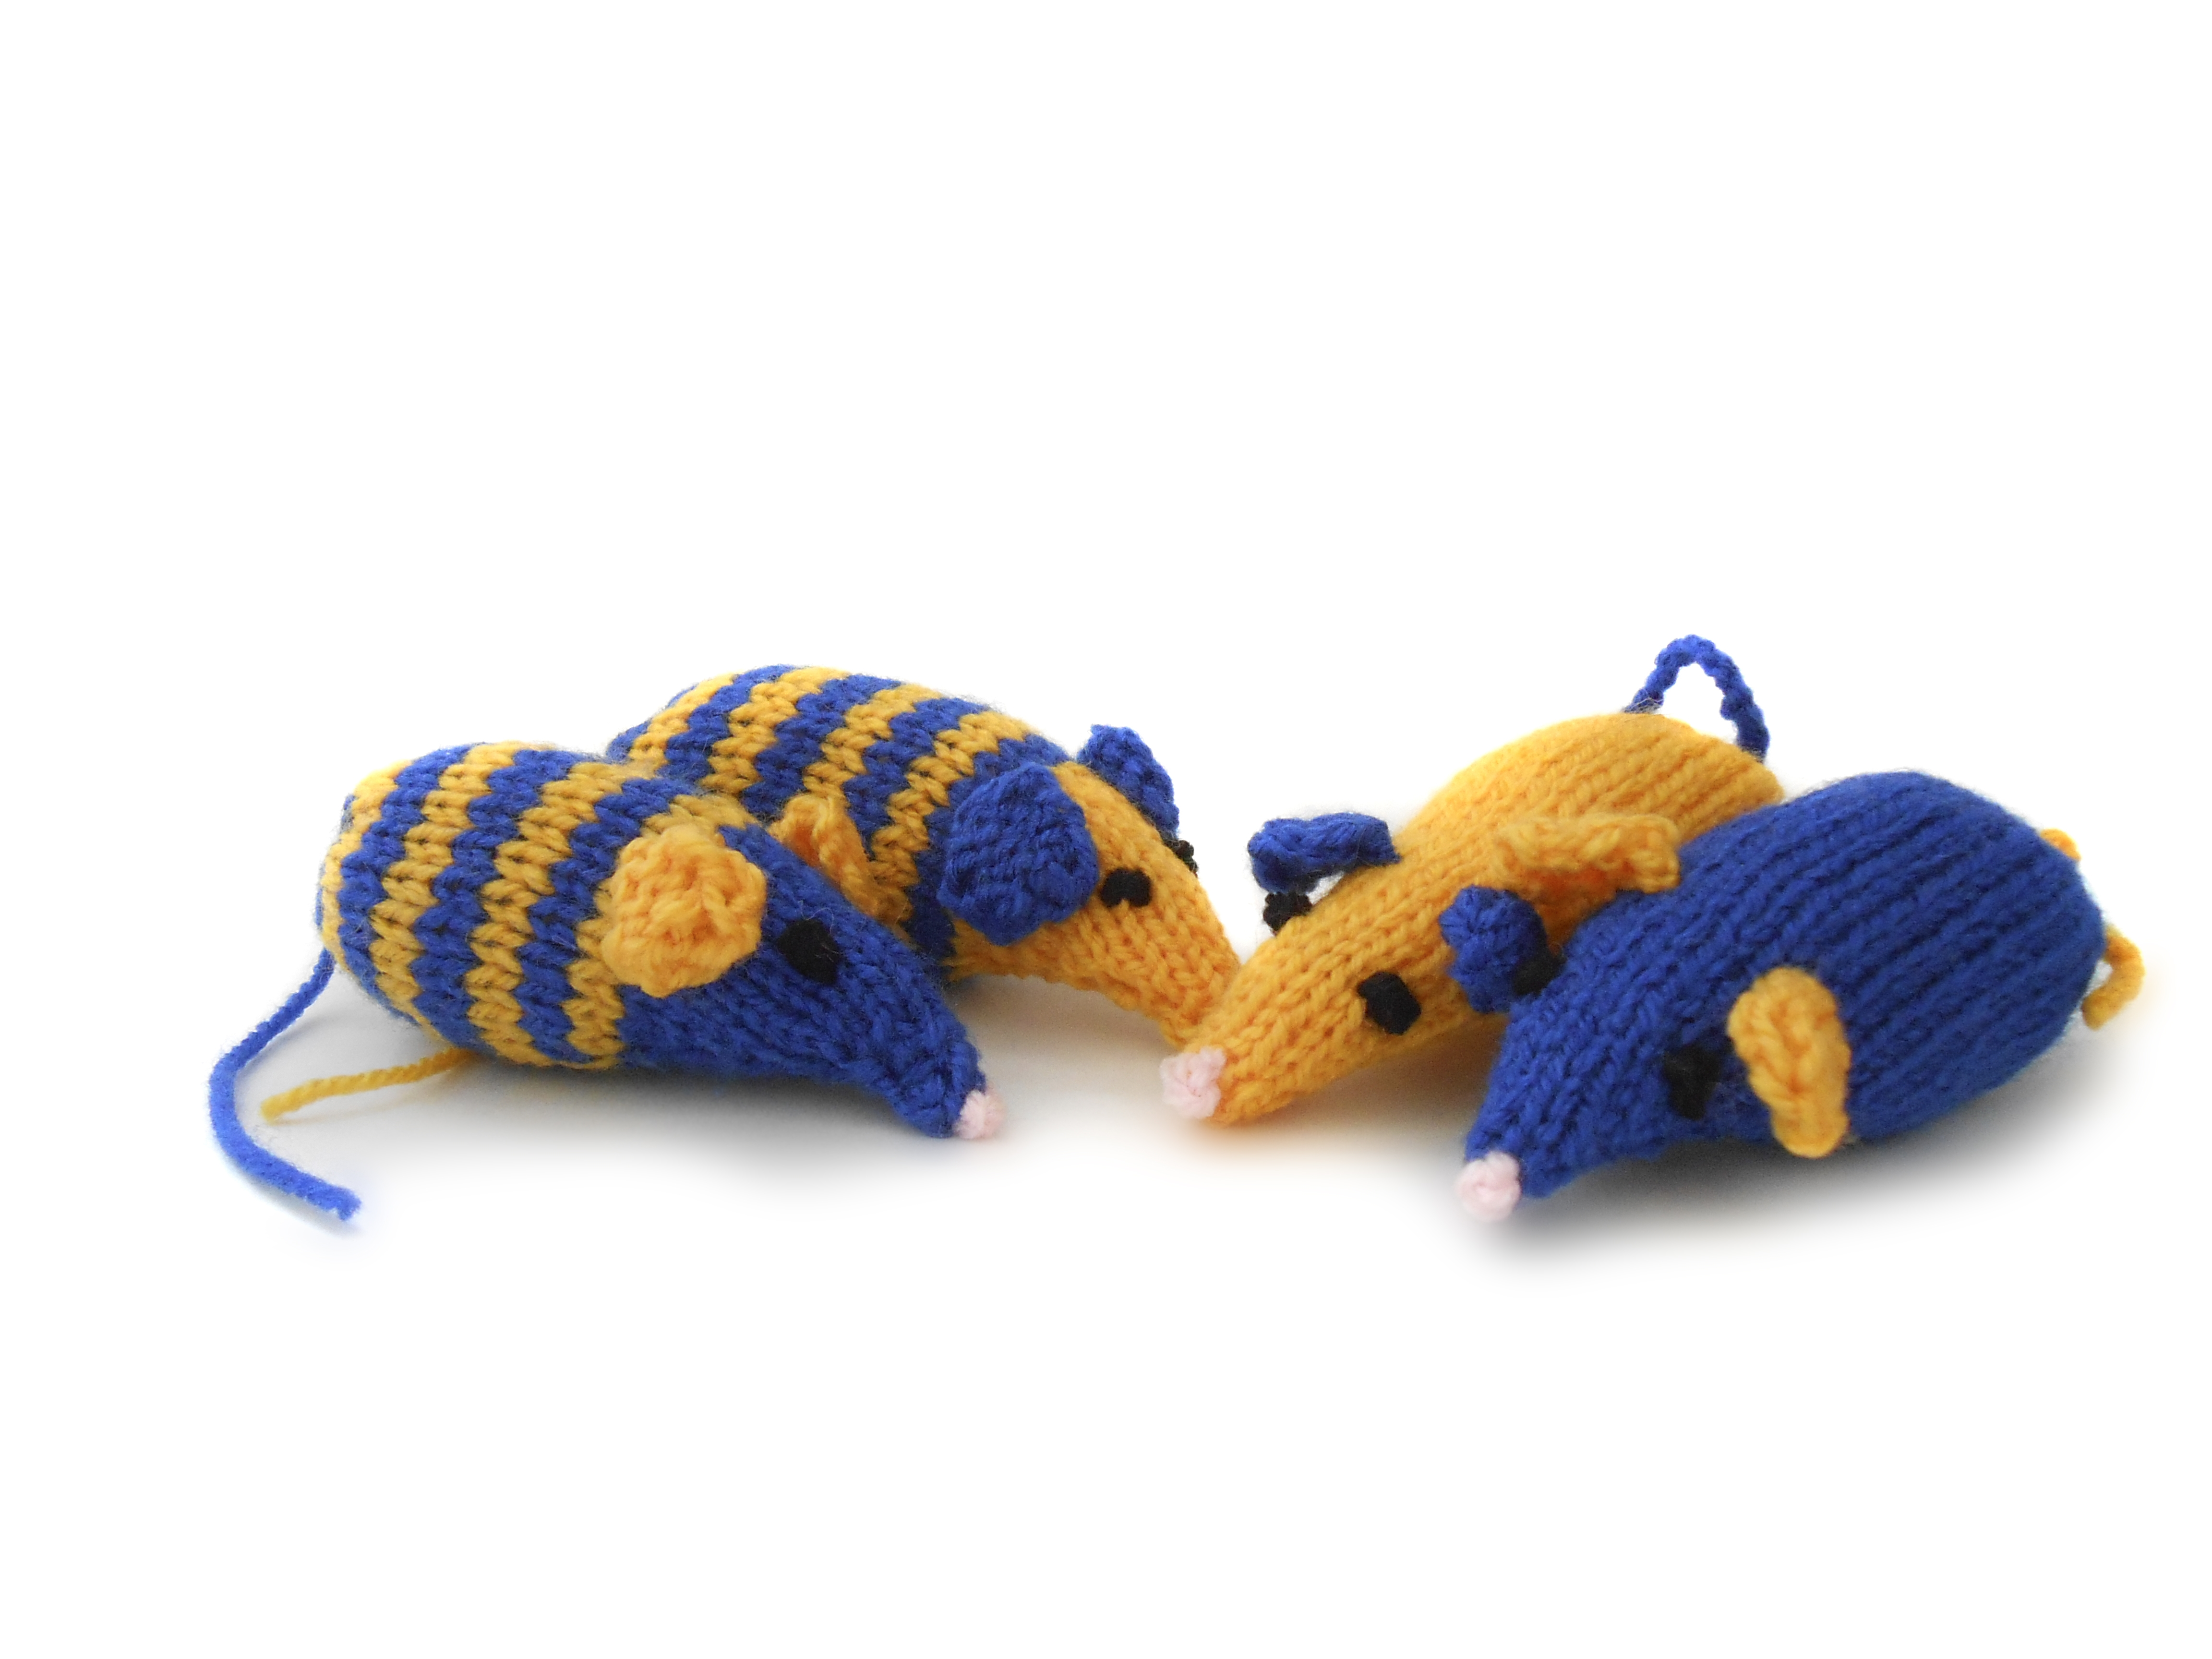 Knit one purr one for unwanted cats and kittens this Christmas